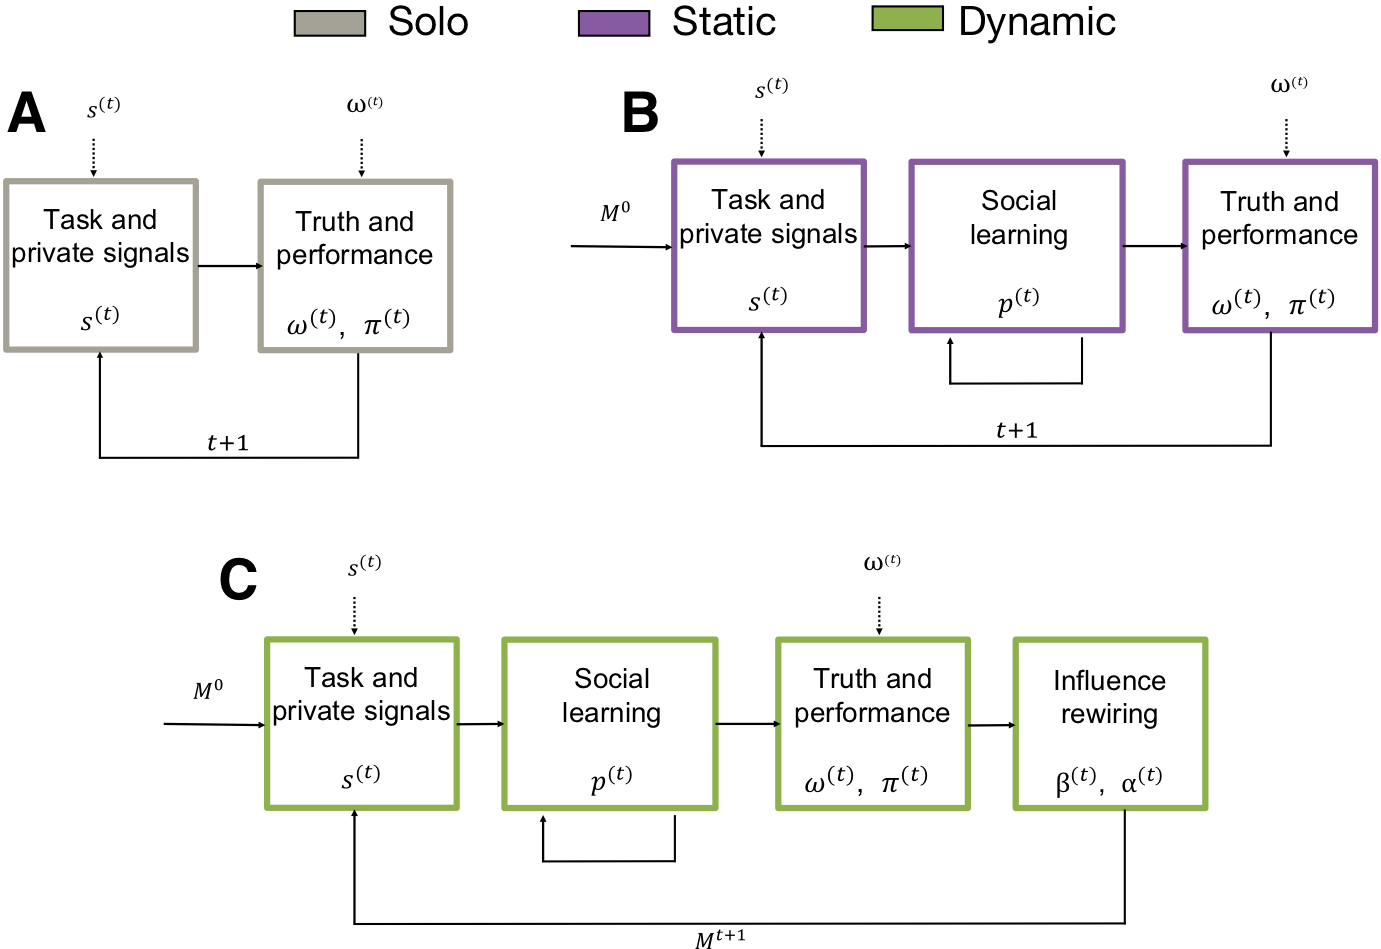 Panel (A) depicts the Solo condition (i.e., no social information) where participants make independent estimates. This condition corresponds to the baseline wisdom of the crowd context. Panel (B) describes the Static network condition (i.e., social learning) where participants engage in a stage of interactive social learning, where they are exposed to the estimates of a fixed set of peers in real time. Panel (C) describes the Dynamic network (i.e., selective social learning) condition that adds the possibility for participants to choose who to follow and be influenced by in the next round.